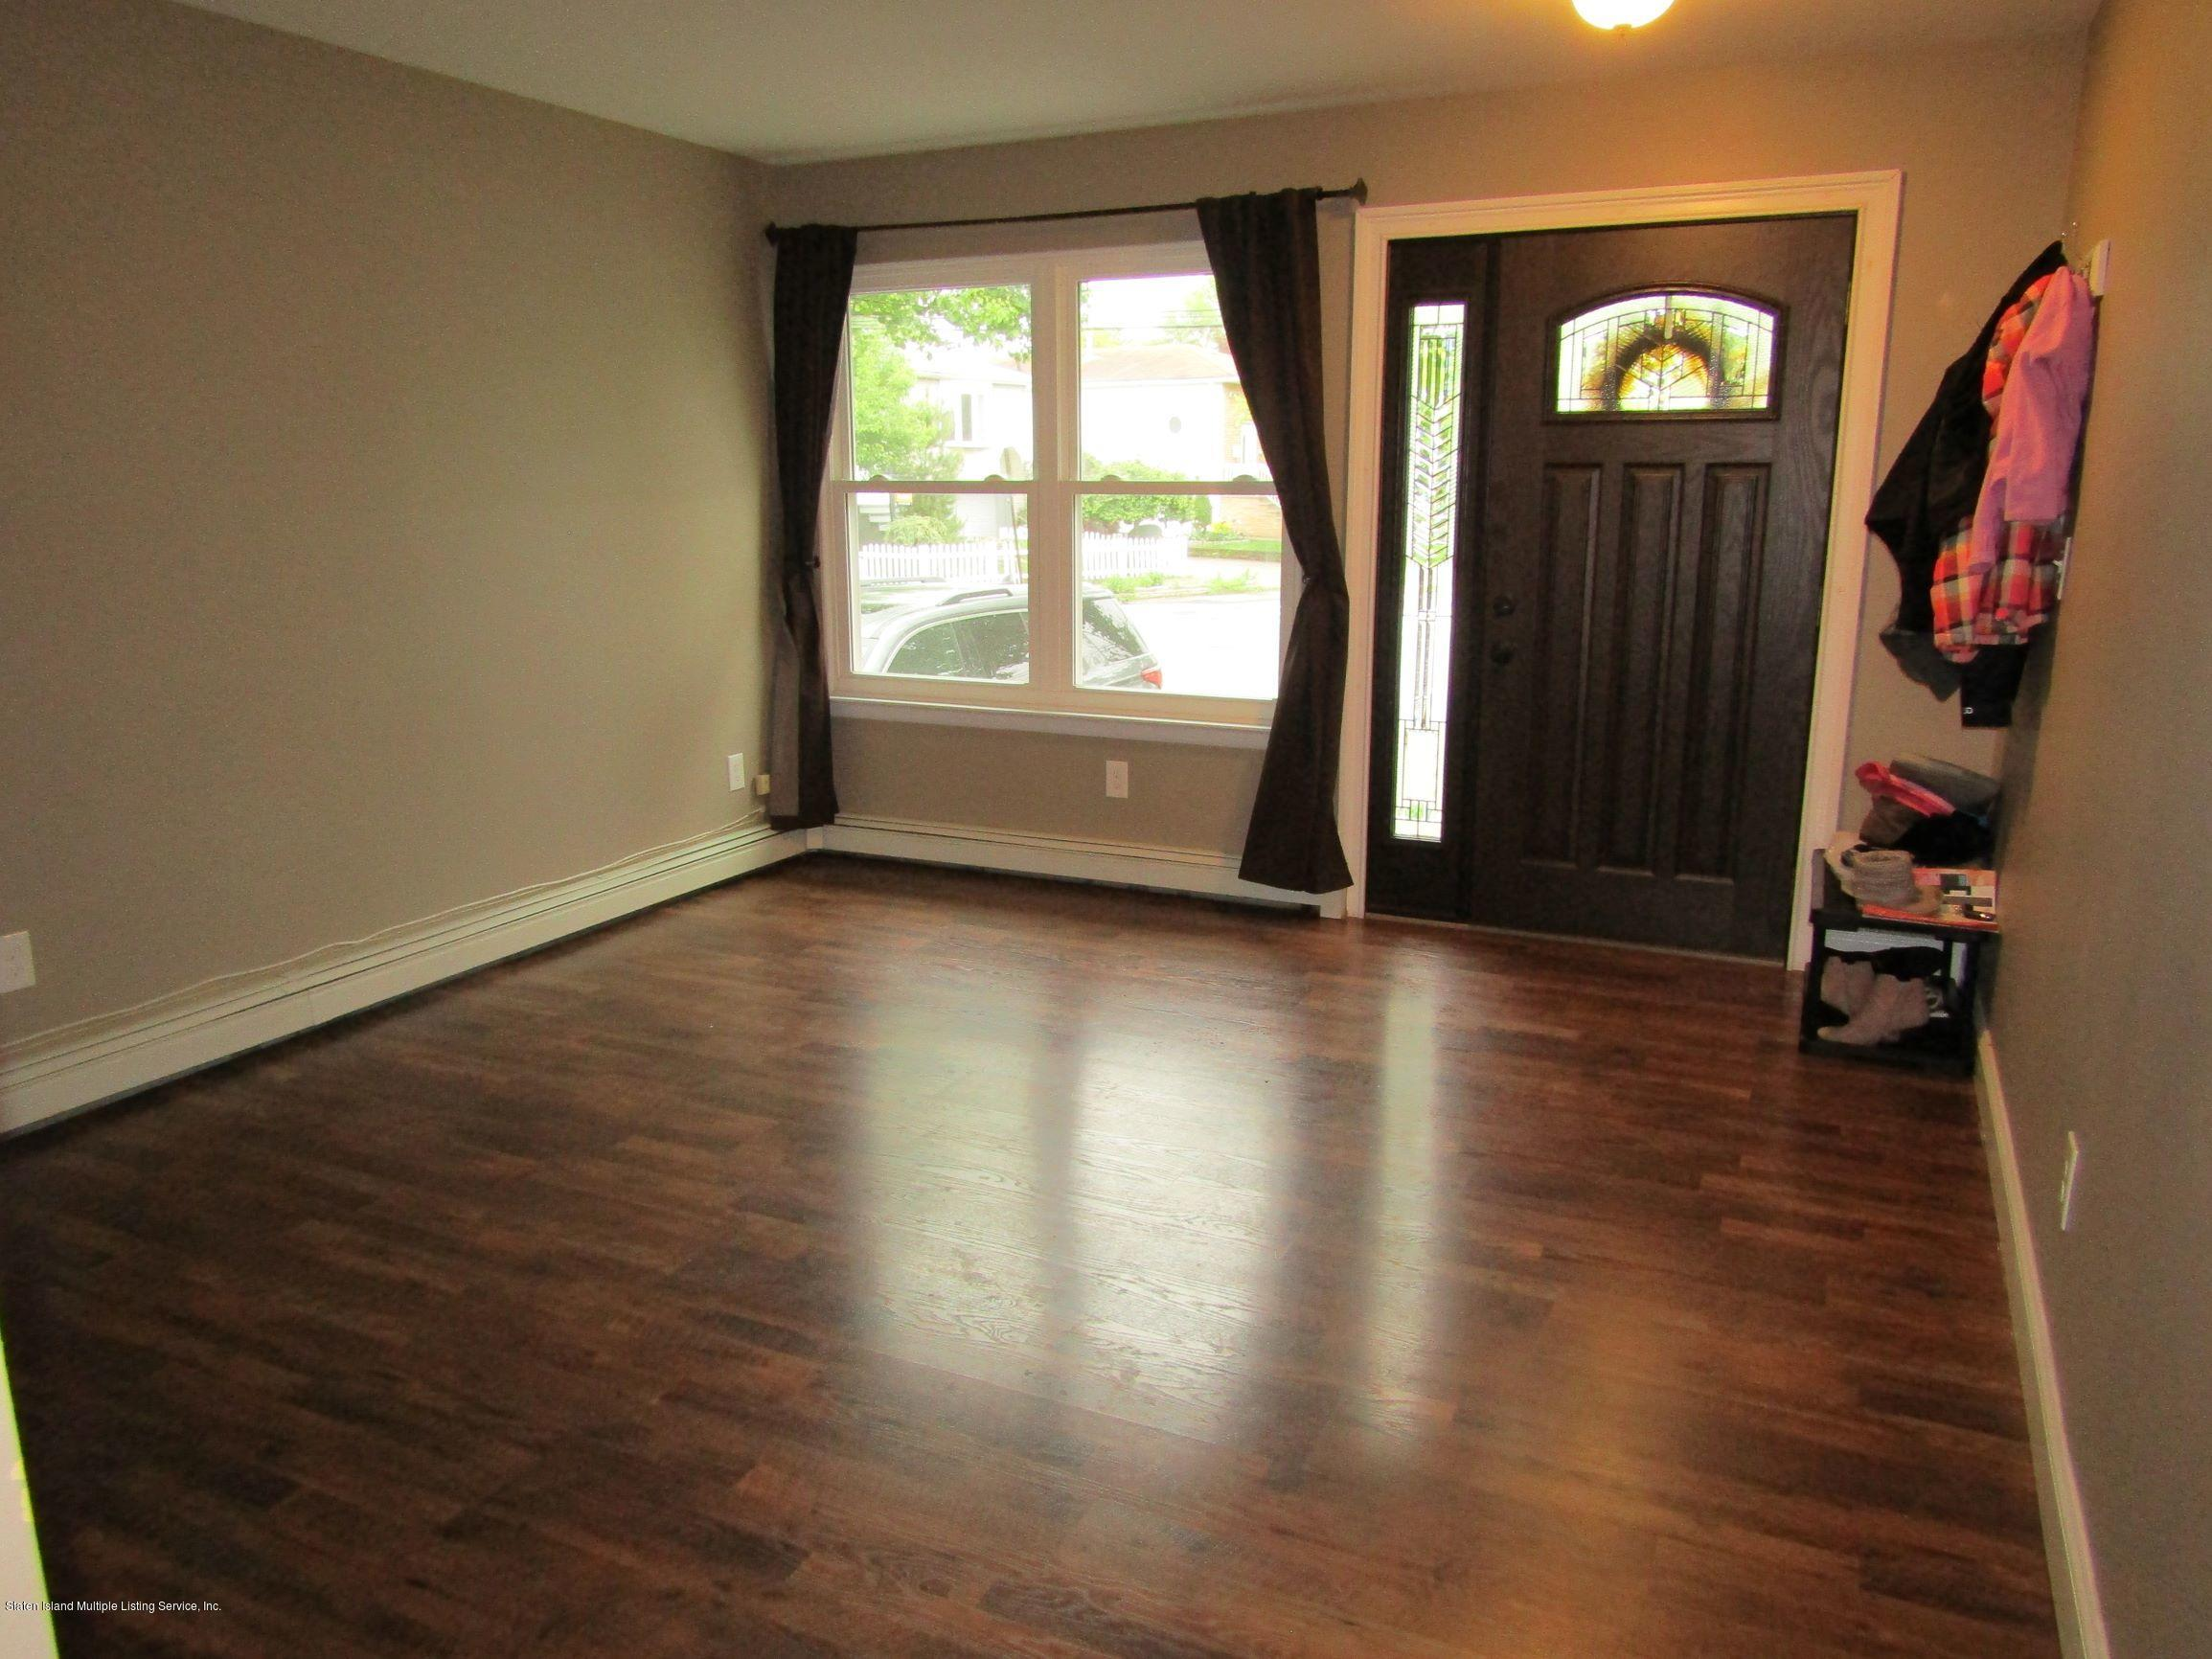 Single Family - Semi-Attached 365 Mosely Avenue  Staten Island, NY 10312, MLS-1126794-2